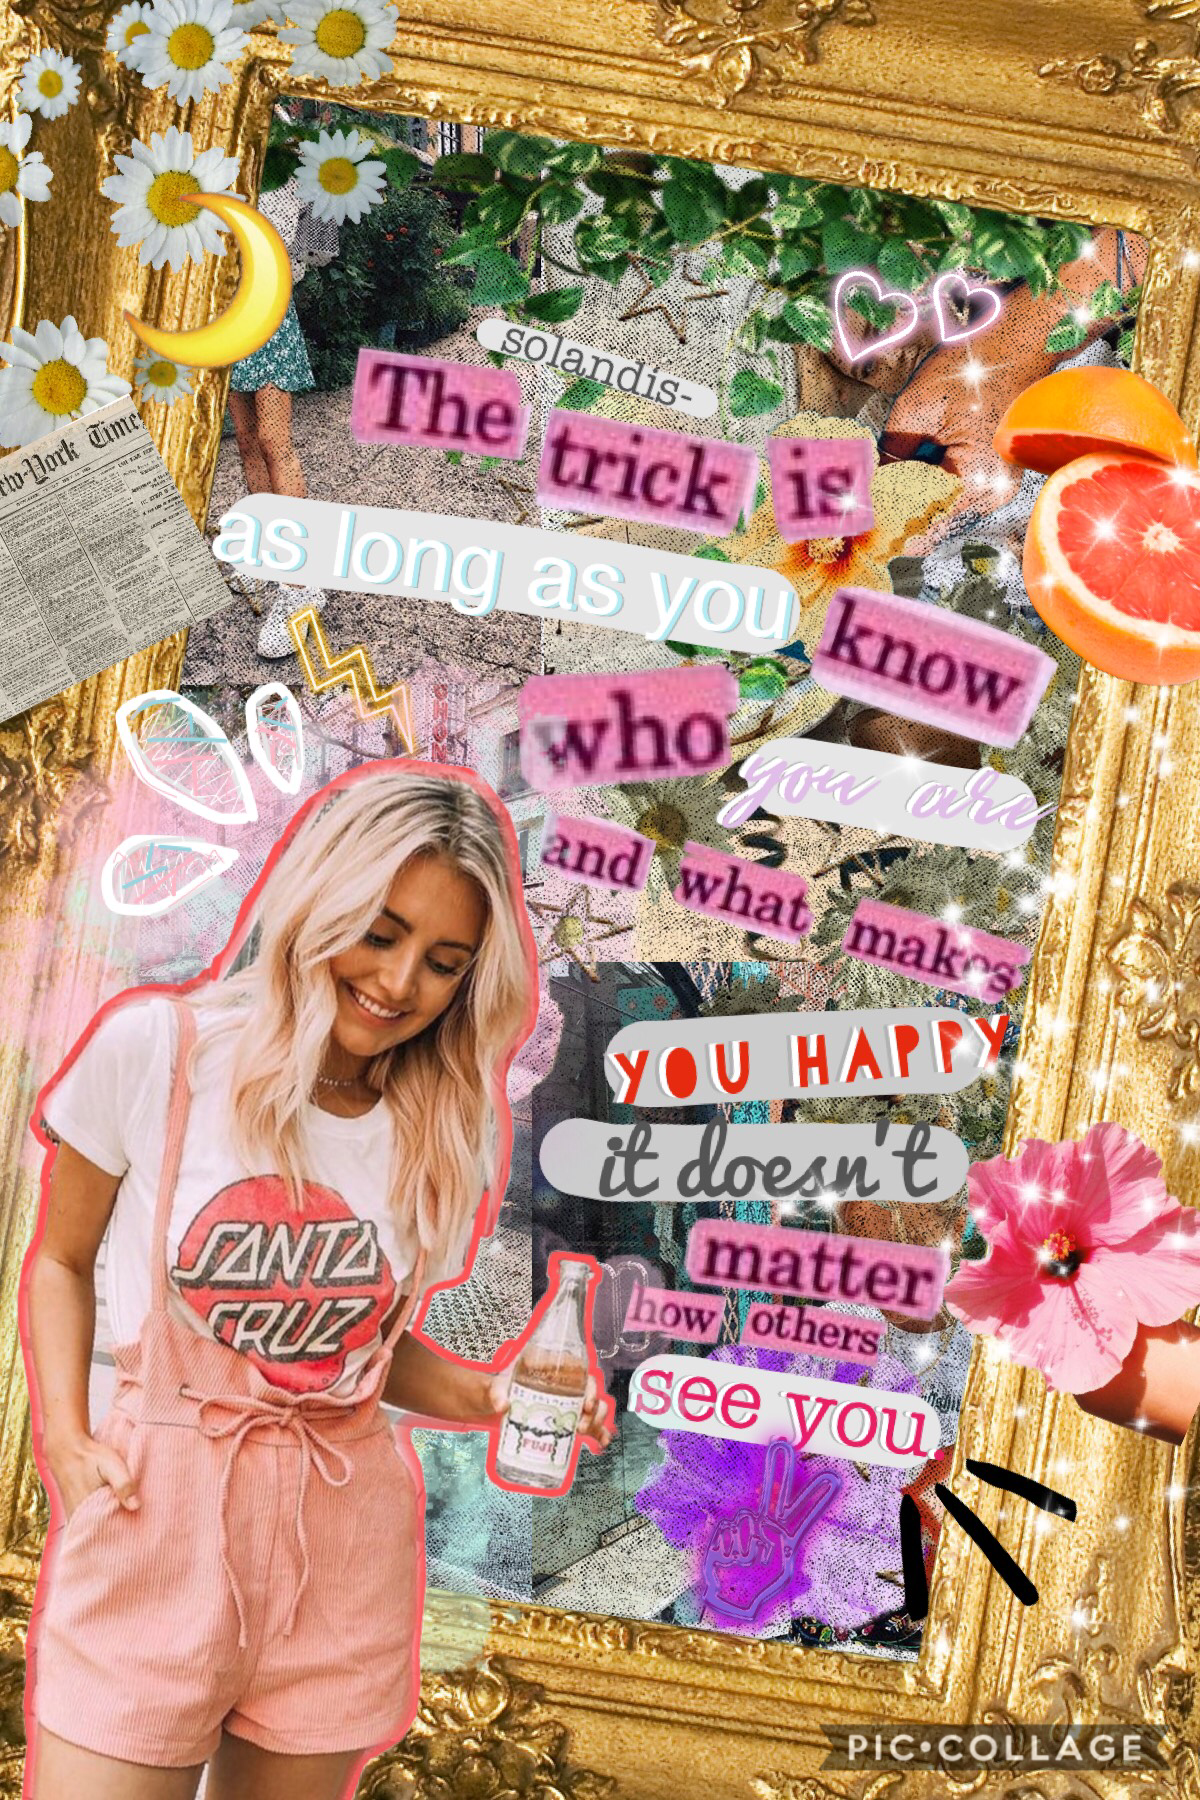 🌈✨t a p p y✨🌈 3.1.19.  It's March 1st 🌈 woah life goes by fast 👌🏼 anyways hope you like dis collage ♥️ rate outa 10 ⭐️ I am stress free of like a million tests 👌🏼😂 woohoo 🥳 QOTD: sing 🎤 or dance 💃🏻 AOTD: I like to sing more but it's hard to pick still ✨☀️